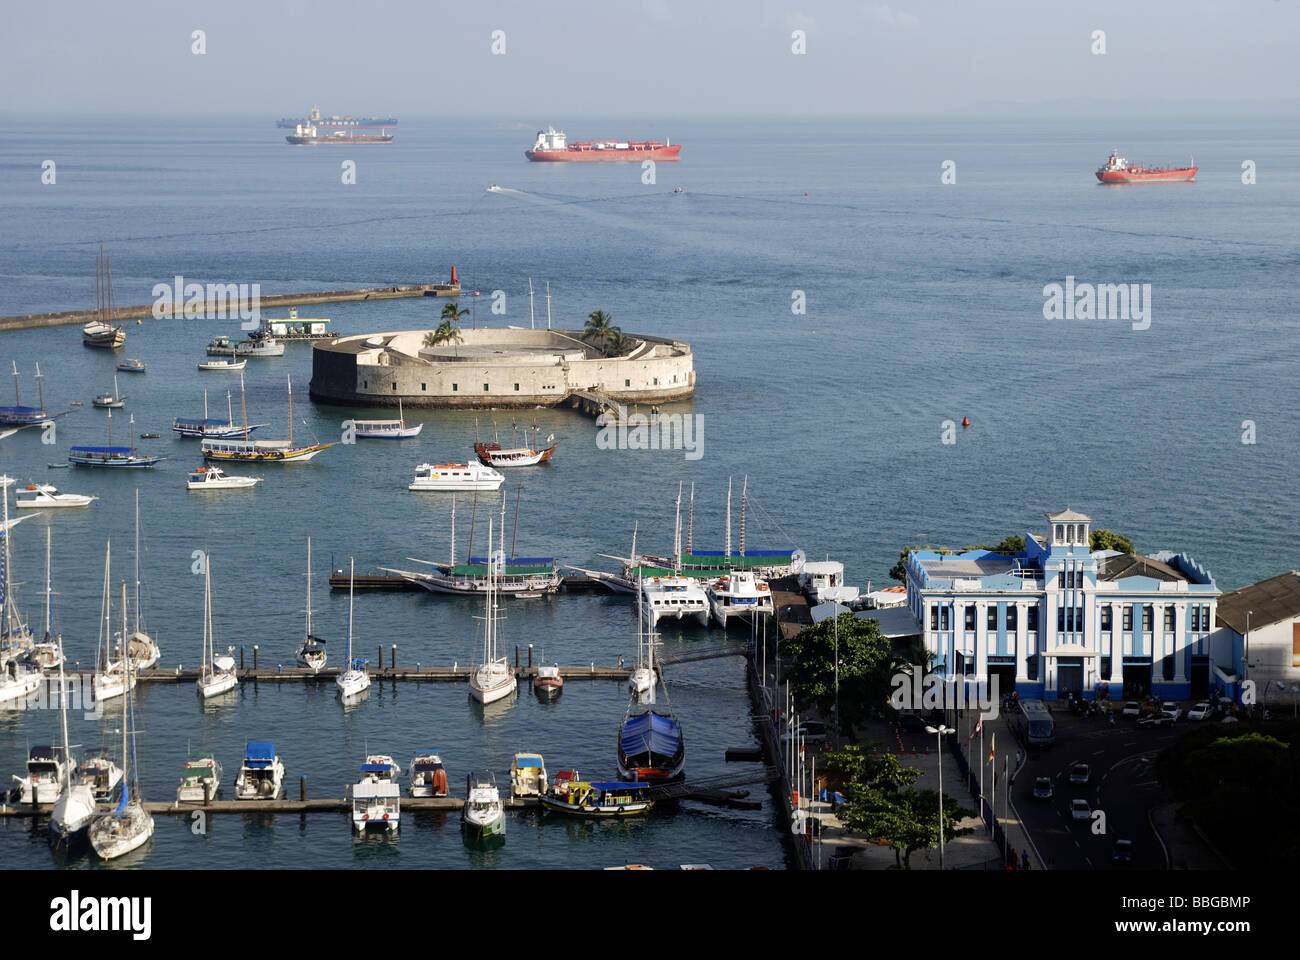 View of the defensive fortification Forte Sao Marcelo and docks, Salvador, Bahia, UNESCO World Heritage Site, Brazil, Stock Photo